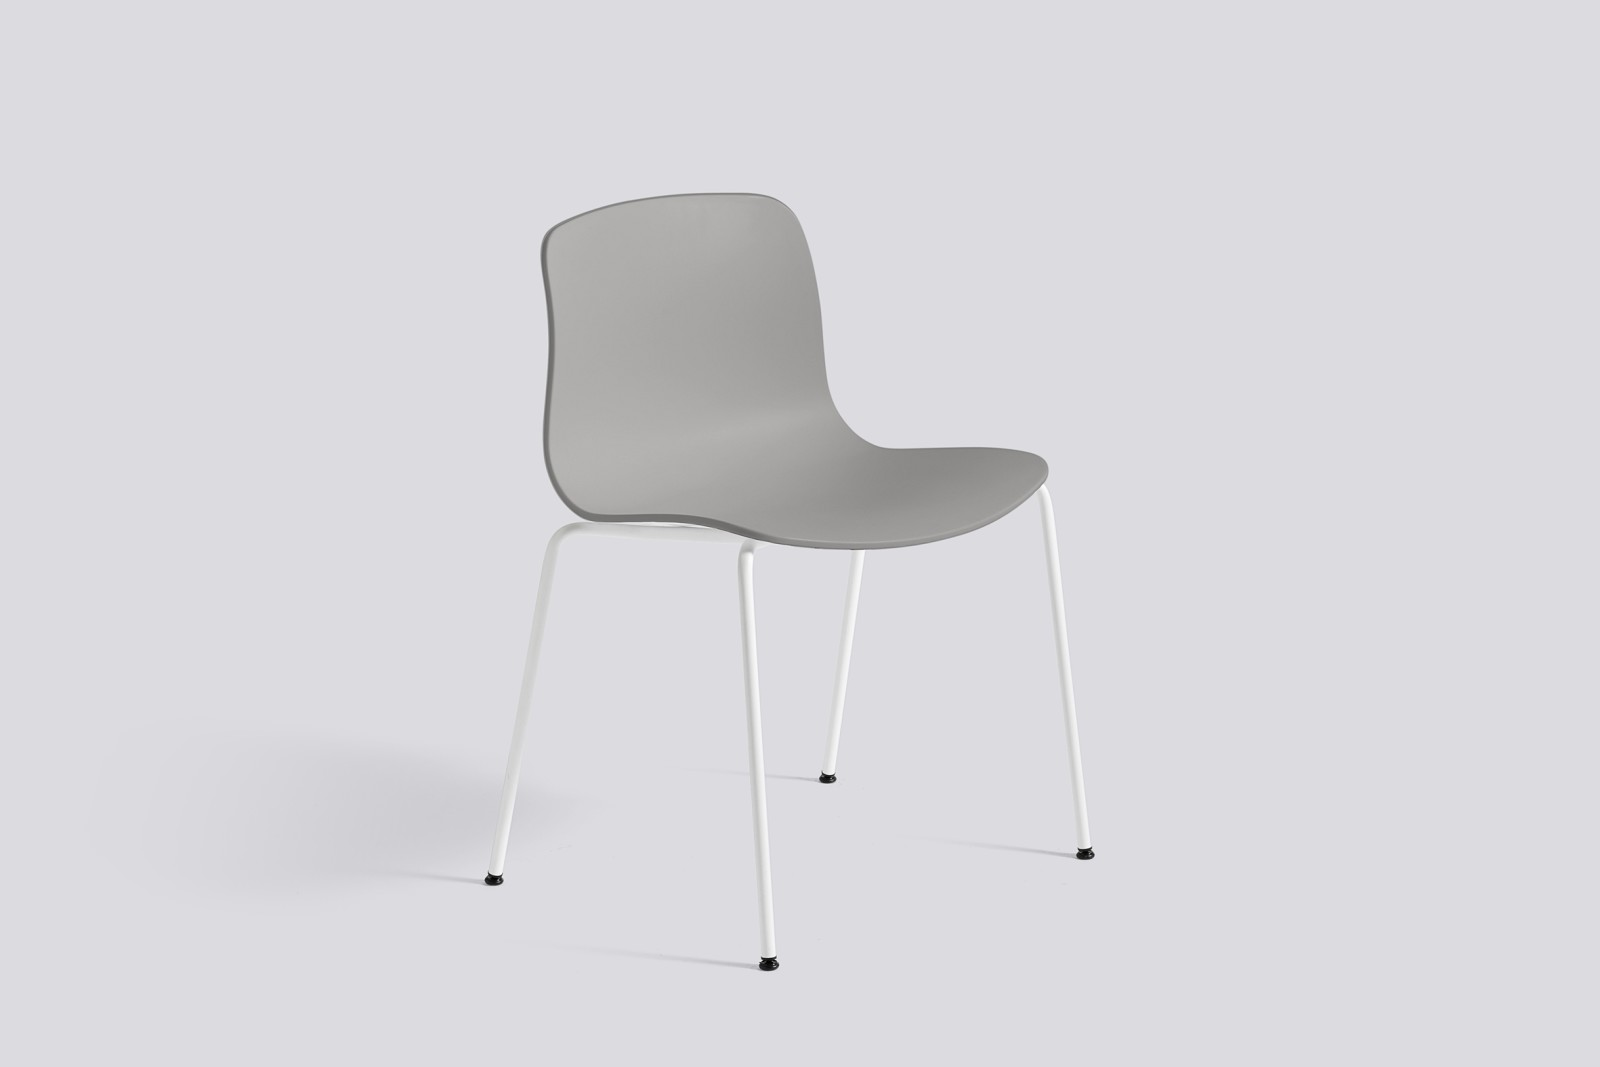 About A Chair AAC16 Concrete grey, White Powder Coated Steel